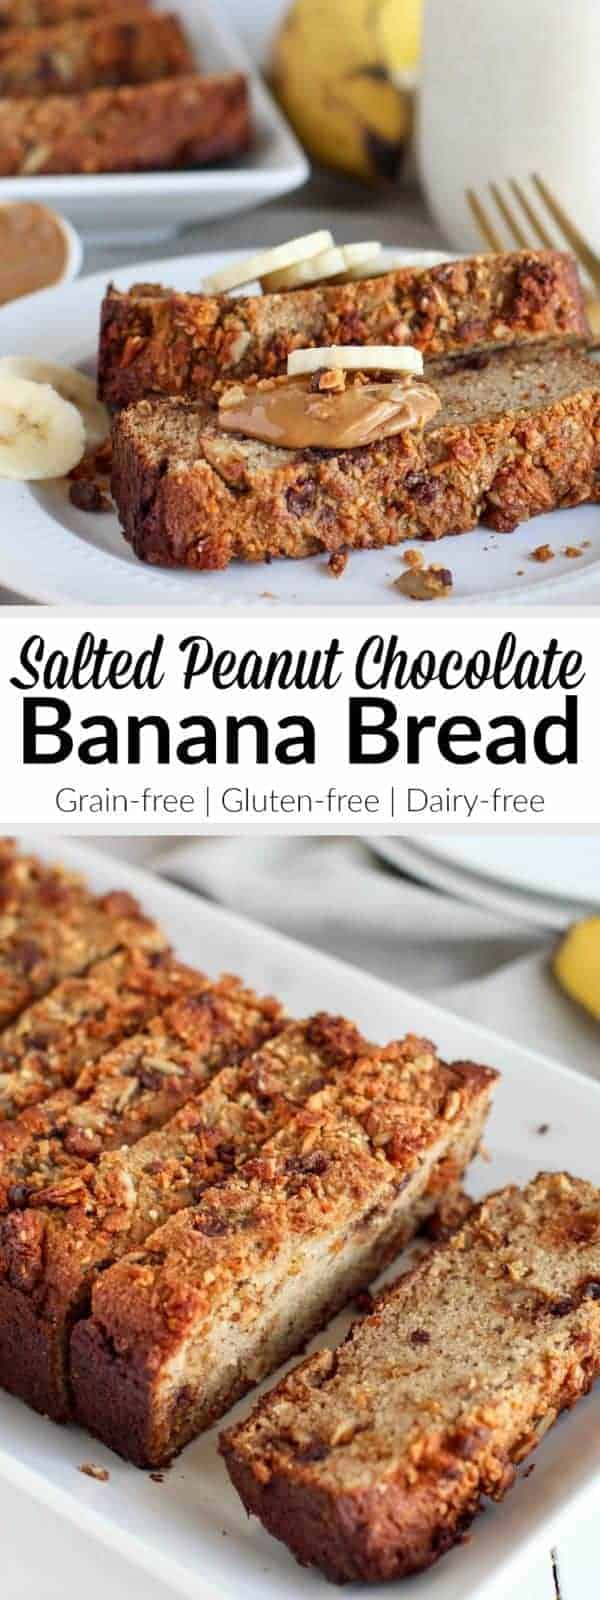 Grain-free Salted Peanut Chocolate Banana Bread: One simple addition turns a classic banana bread into something even more delicious! With only 7 grams of sugar per serving it's healthy enough to enjoy as part of your breakfast yet still decadent enough to serve at a special gathering with friends and/or family. | Grain-free | Gluten-free | Dairy-free | therealfoodrds.com